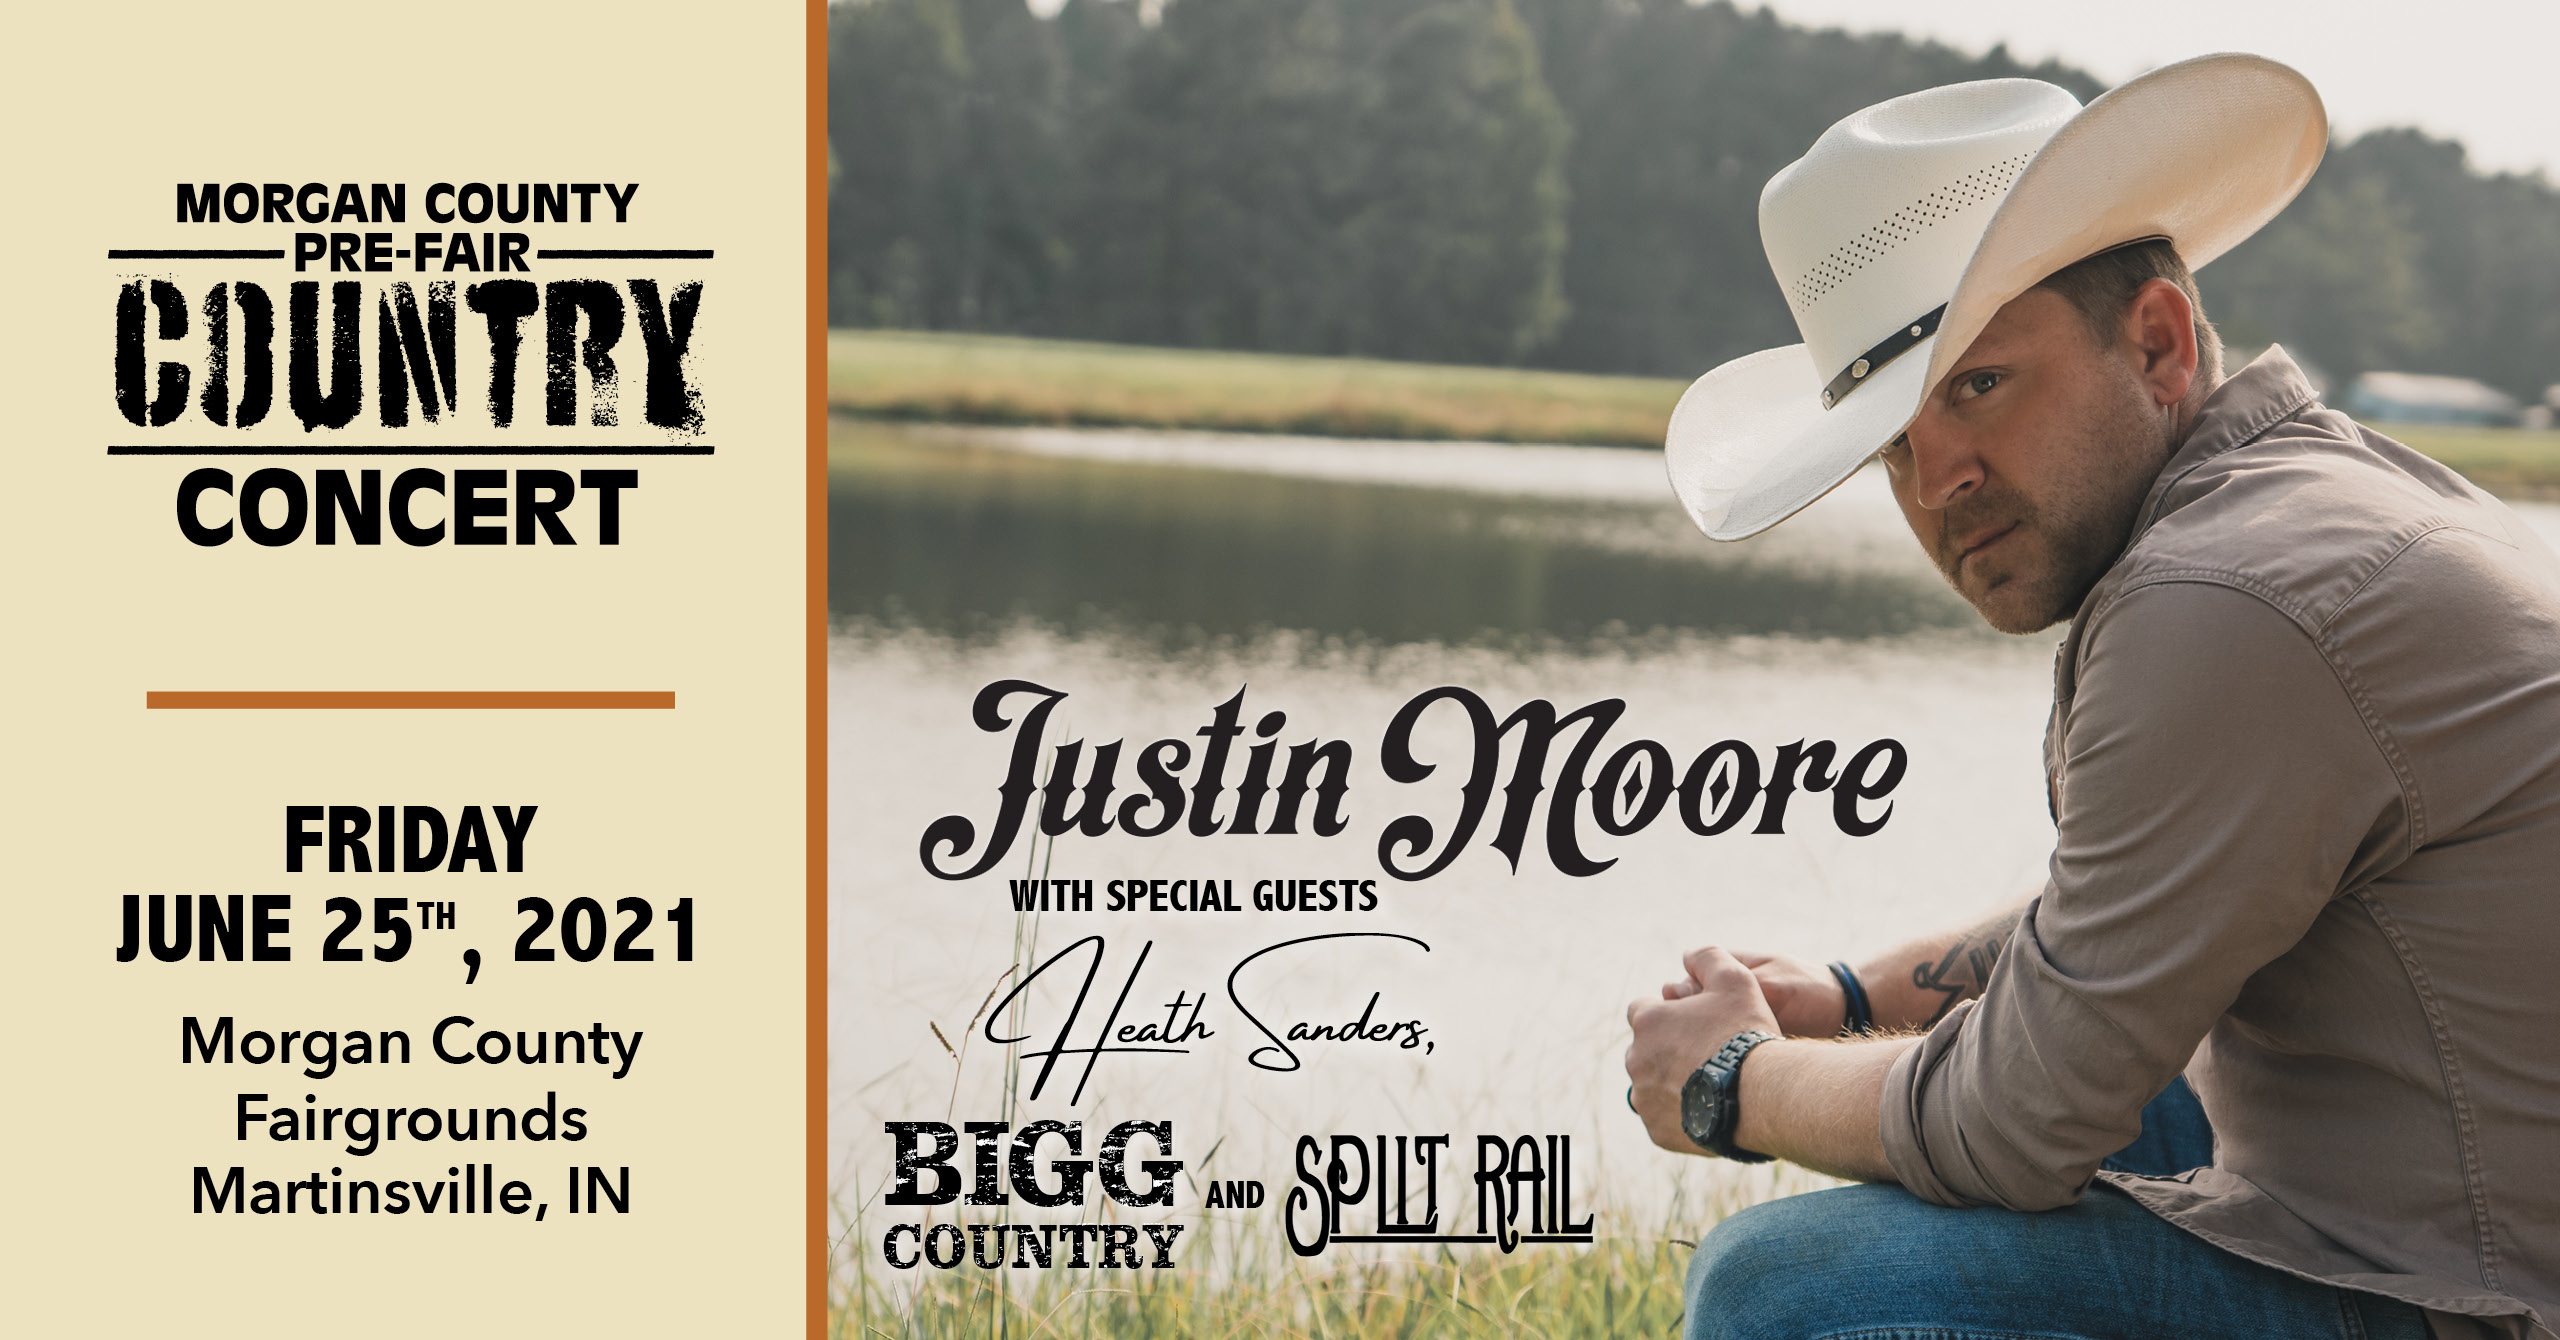 June 25 – The Morgan County Pre-Fair Country Concert Starring Justin Moore